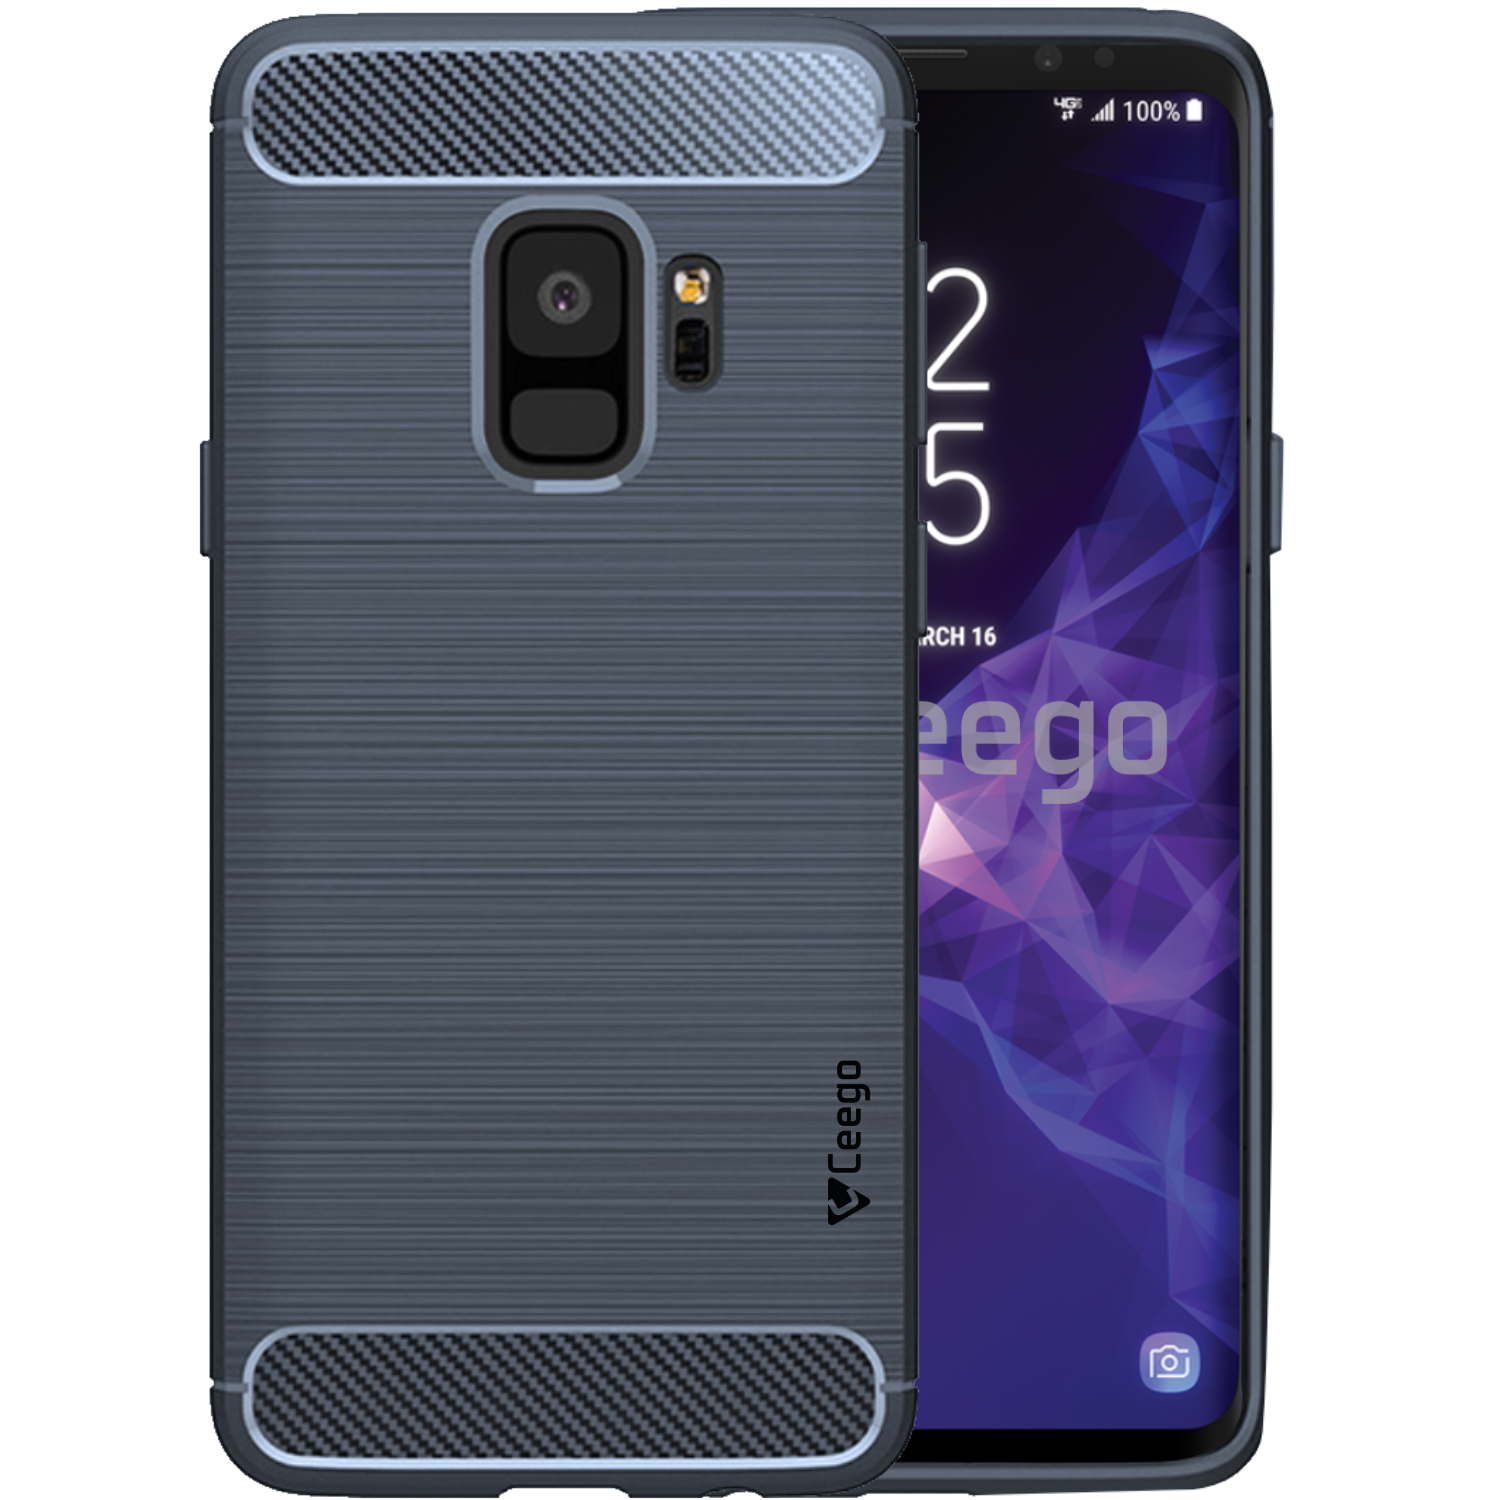 Ceego Carbon Fiber Shield Back Case for Samsung Galaxy S9  – Midnight Blue